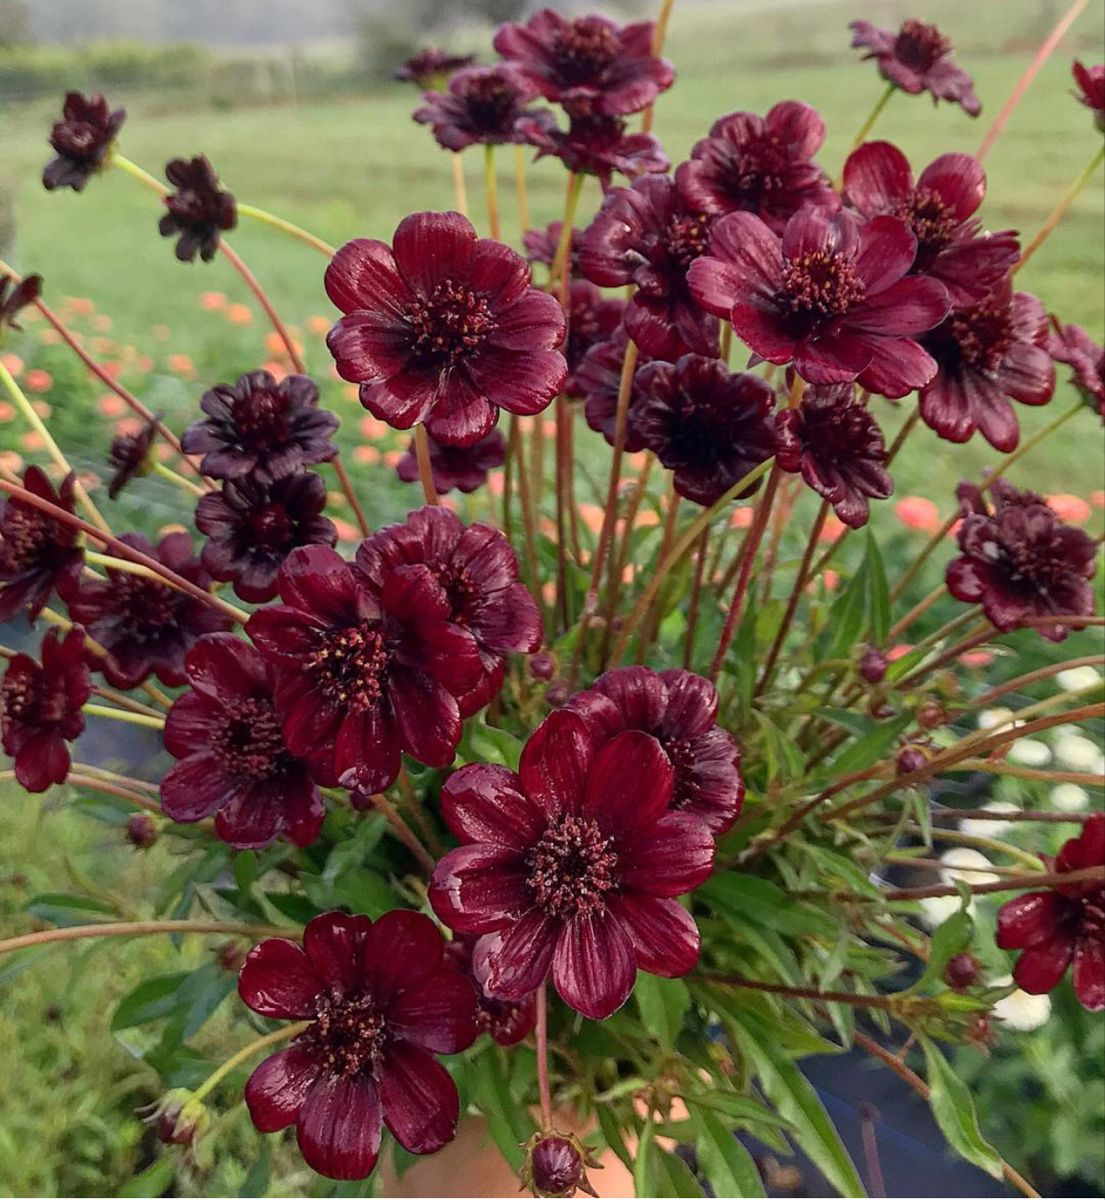 Cosmos Flower In 2020 Chocolate Cosmos Flower Chocolate Cosmos Fragrant Plant